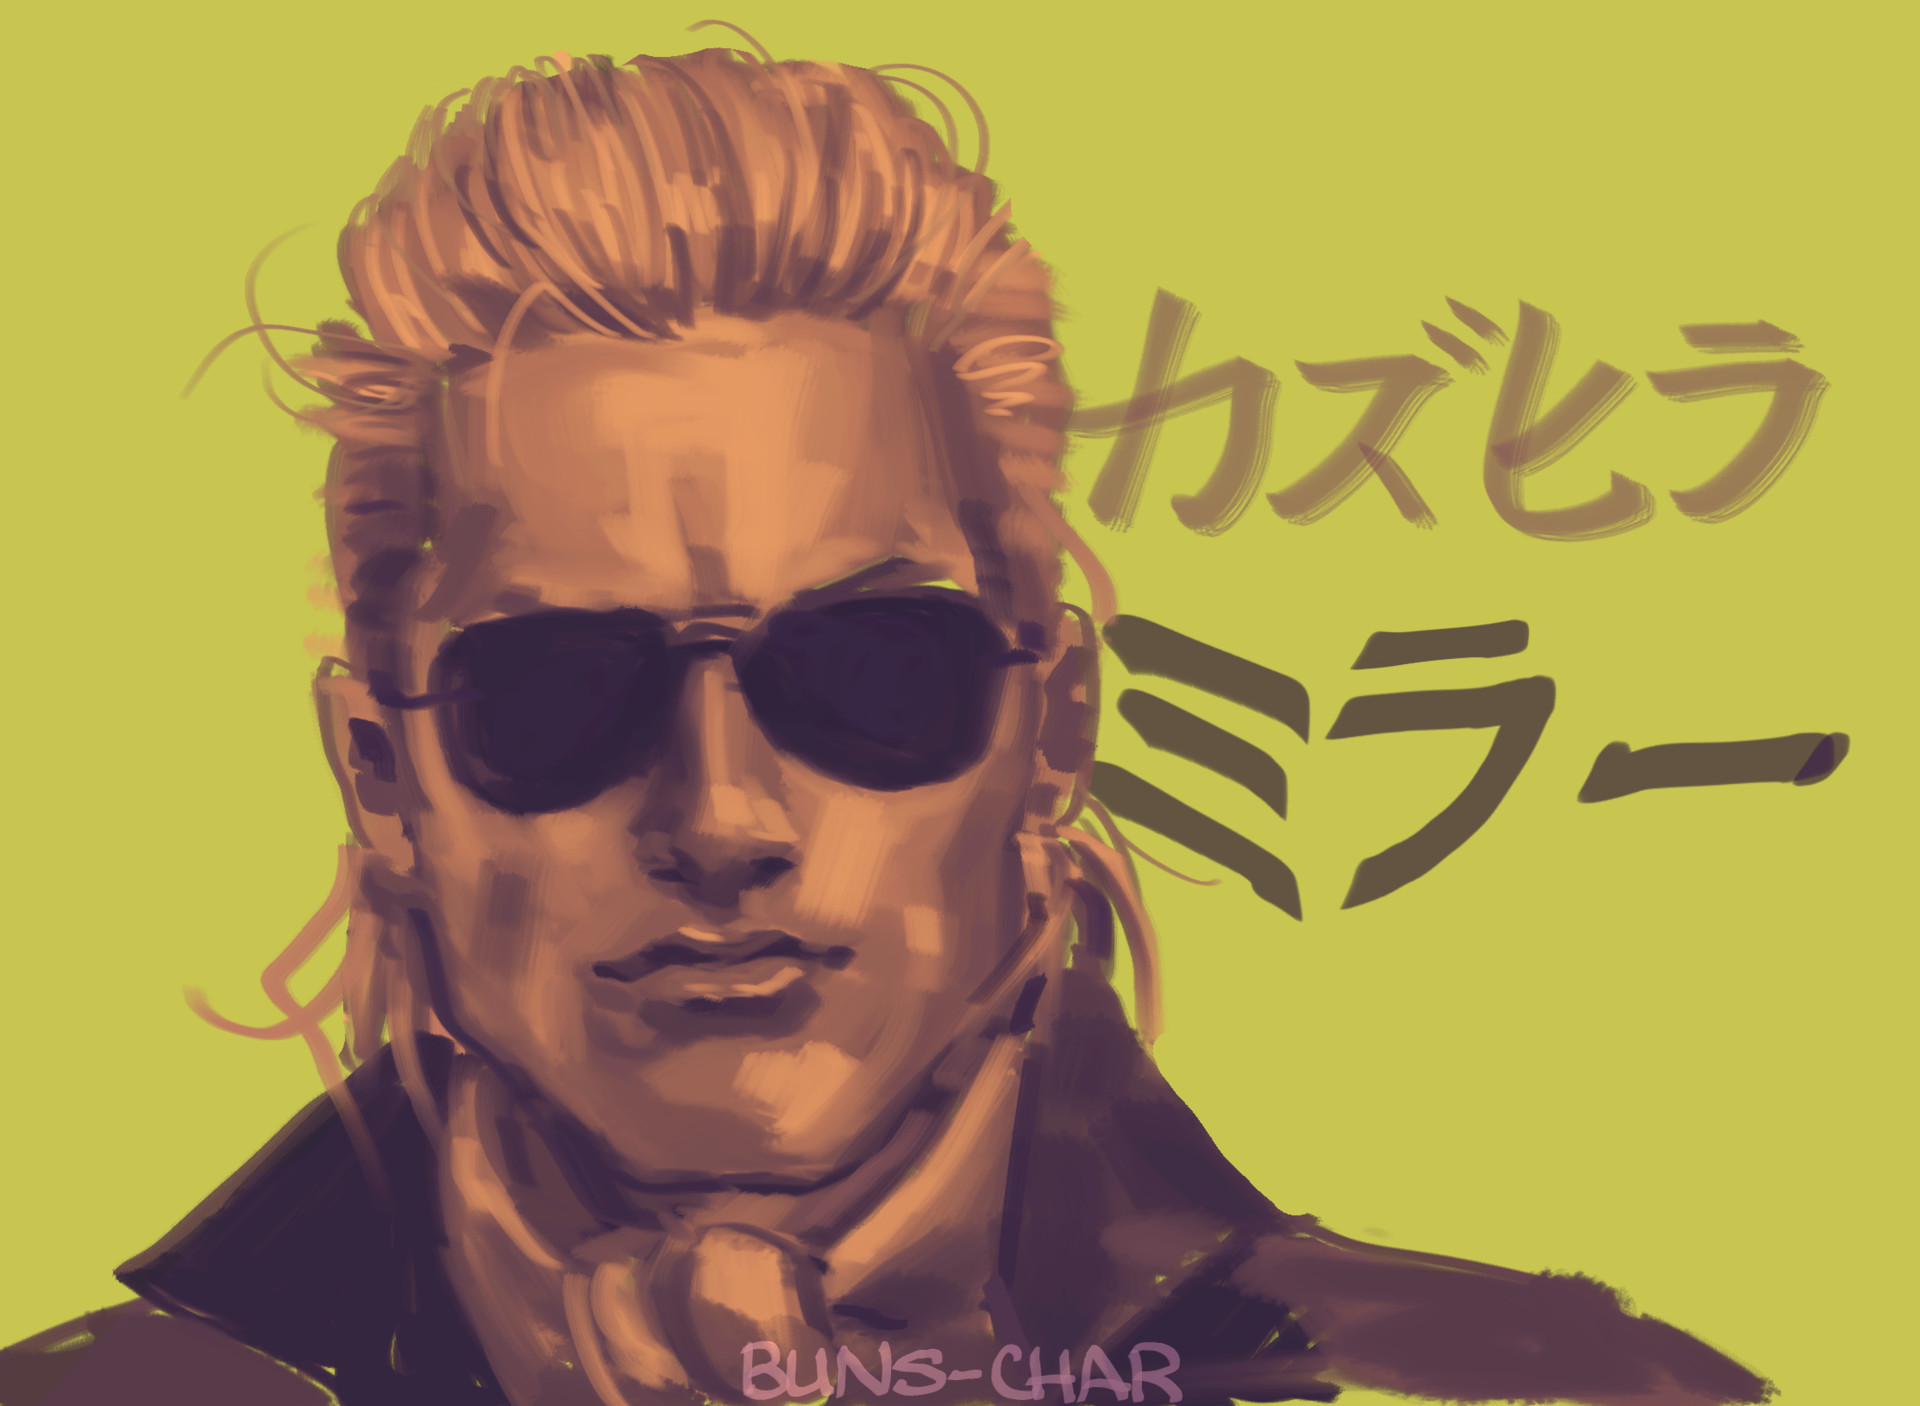 Maya Nguyen Young Kazuhira Miller Metal gear solid v ground zeroes, metal gear solid v the phantom pain. maya nguyen young kazuhira miller